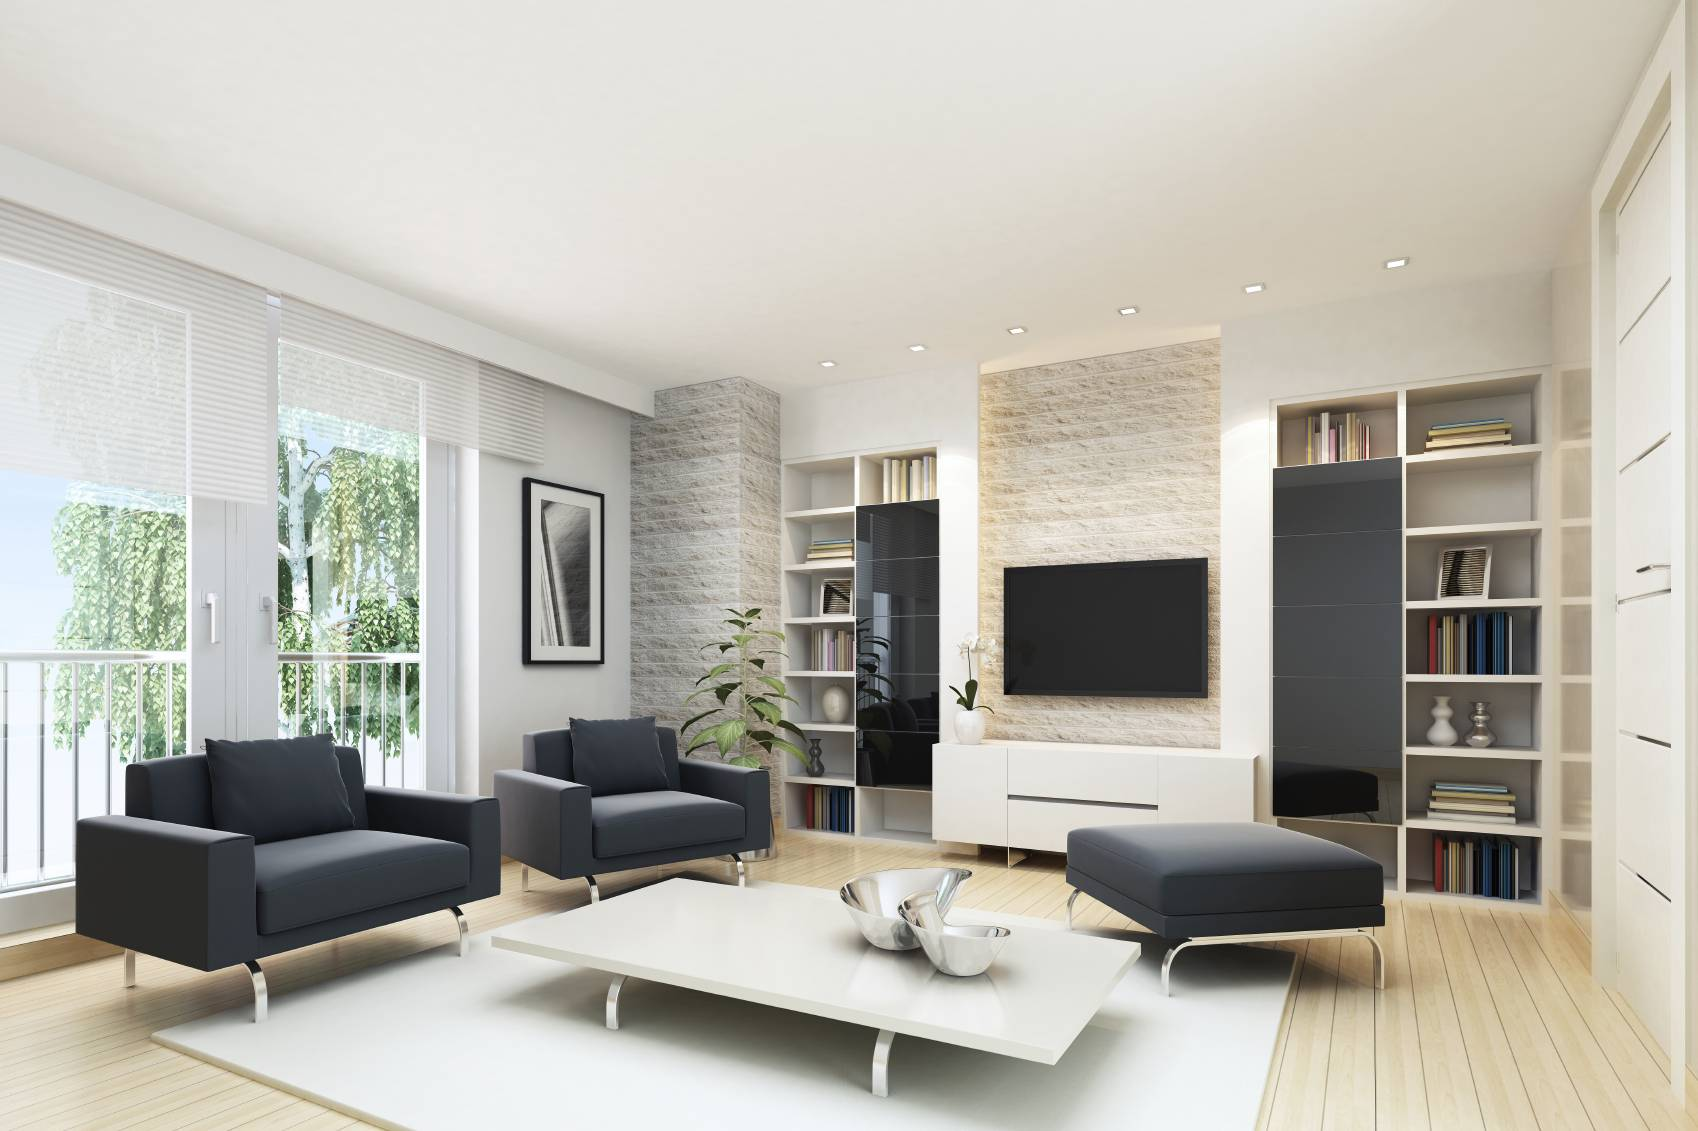 Comment d corer et bien optimiser votre salon for Bien decorer son appartement